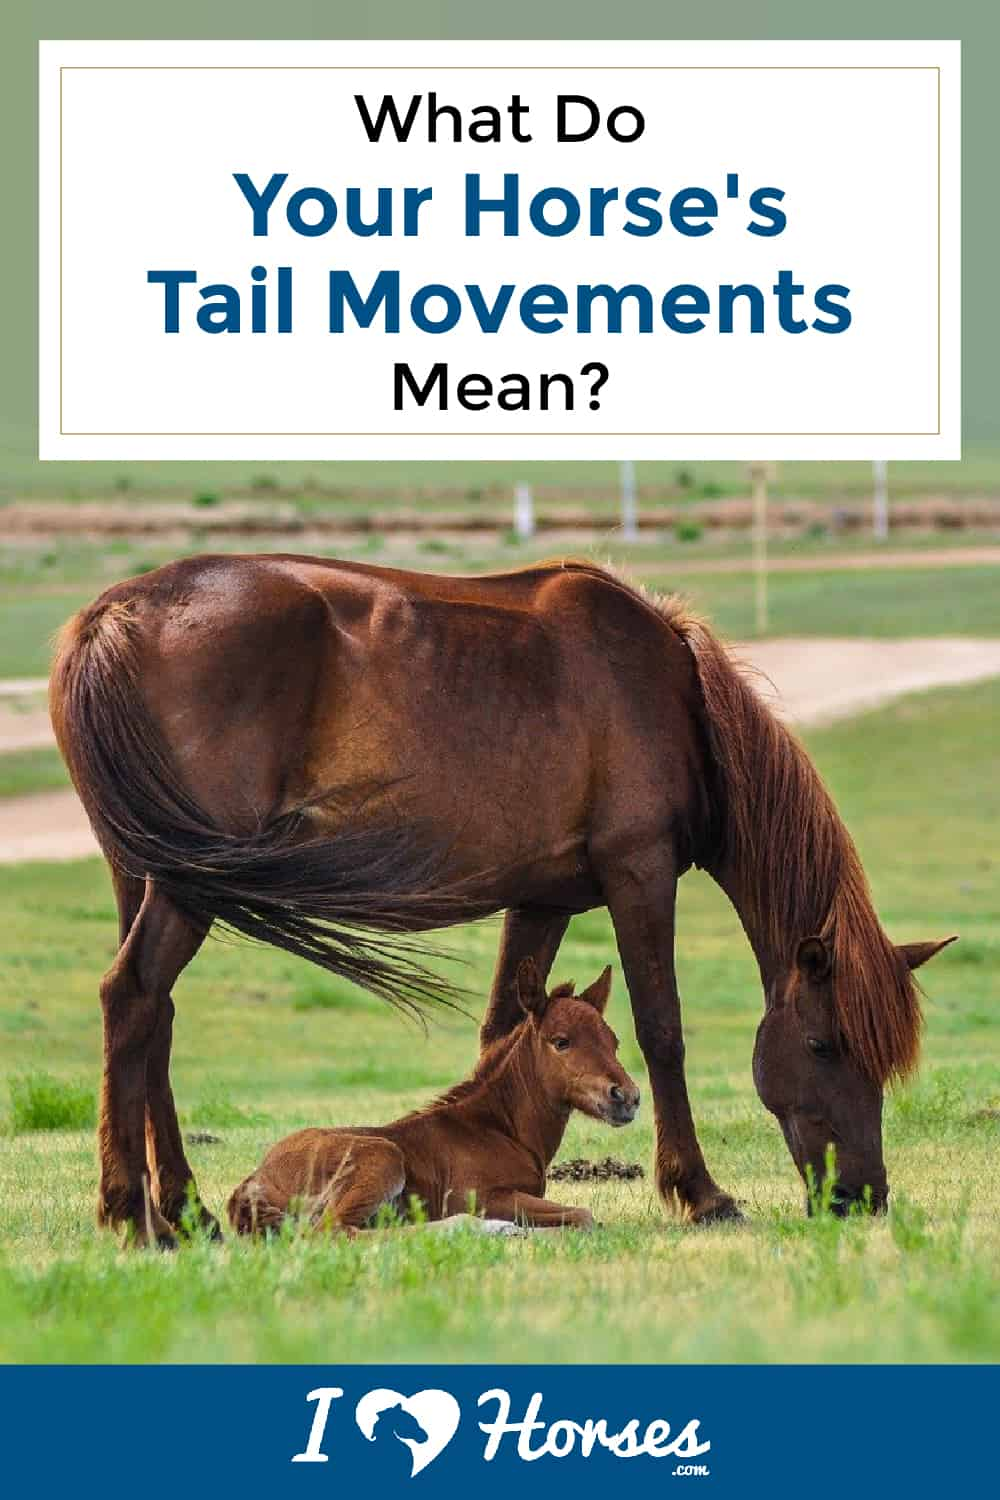 What Your Horse's Tail Movements Mean-02-02